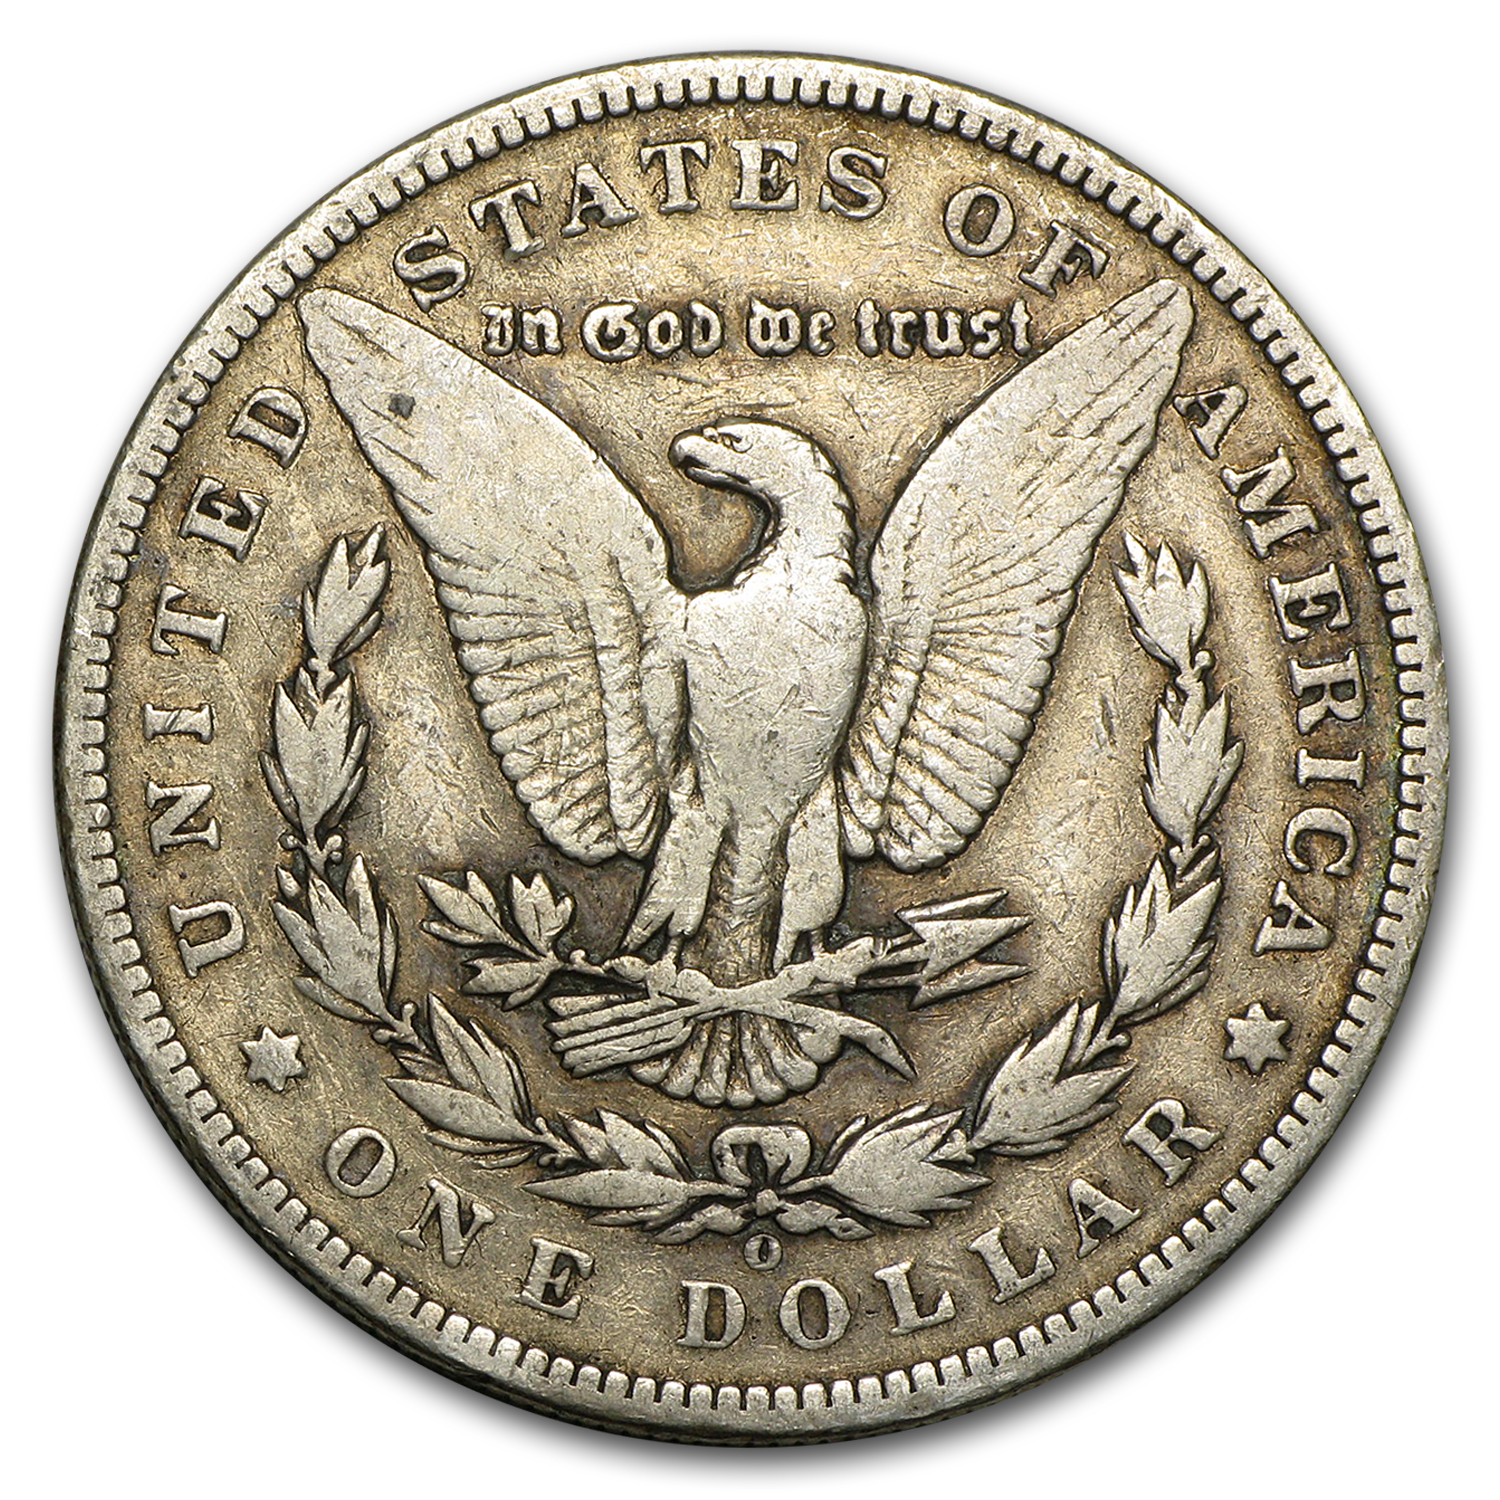 1893-O Morgan Dollar - Very Good